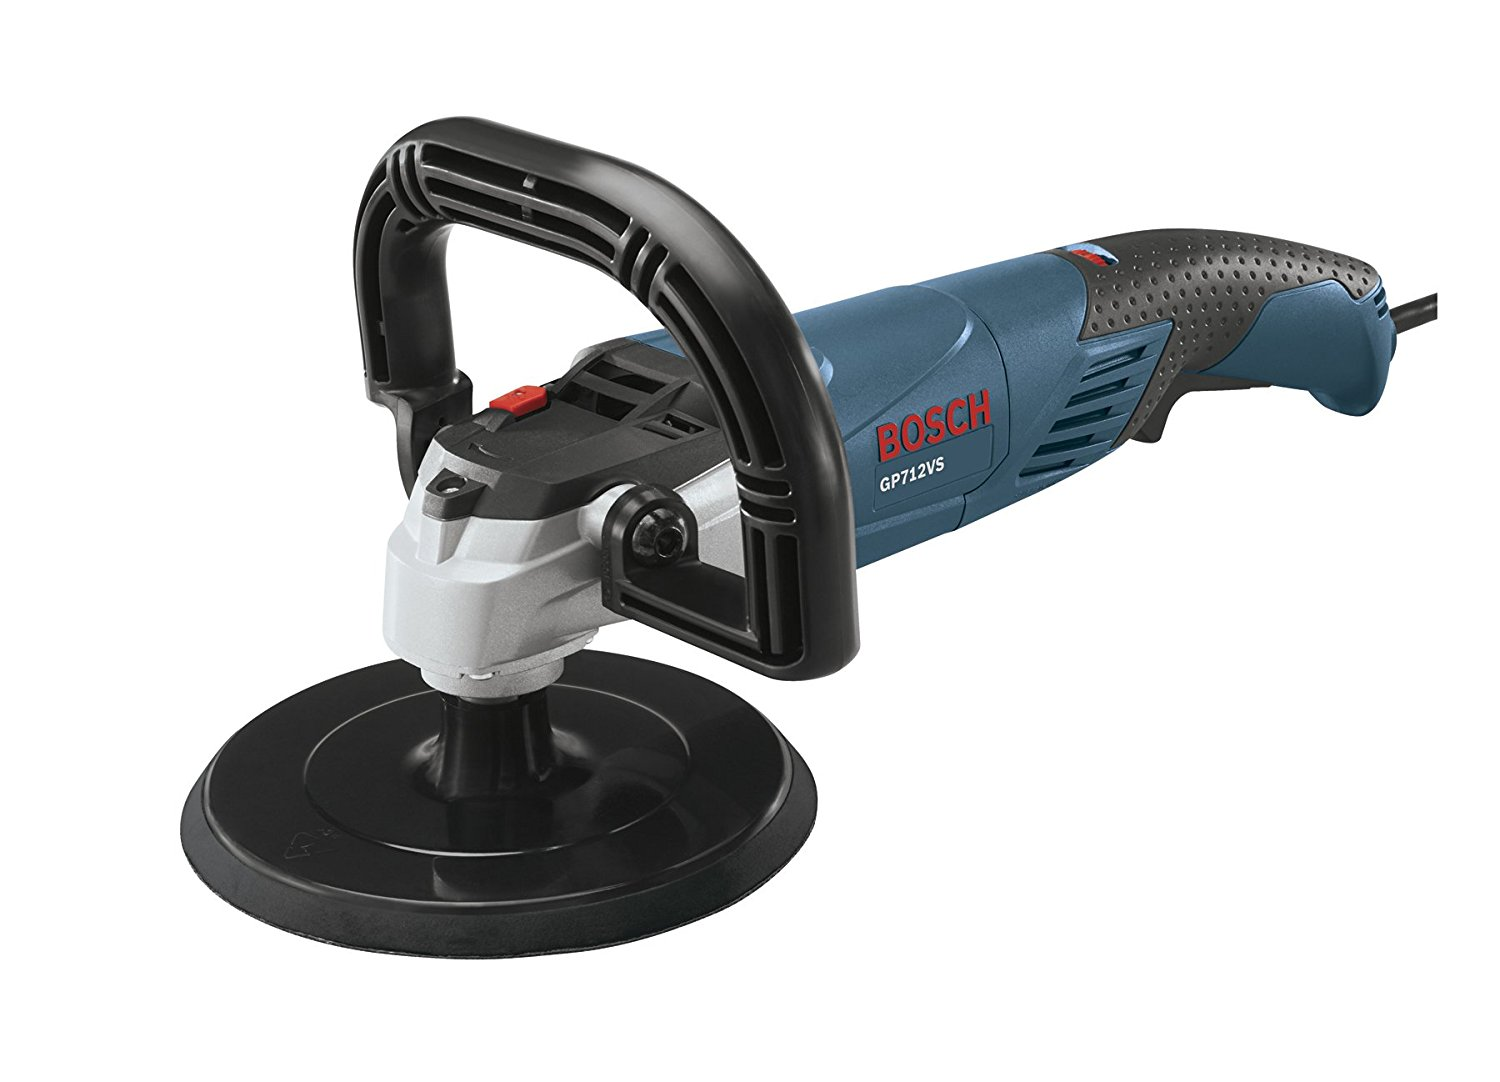 Bosch GP712VS 120-Volt Large Angle Polisher